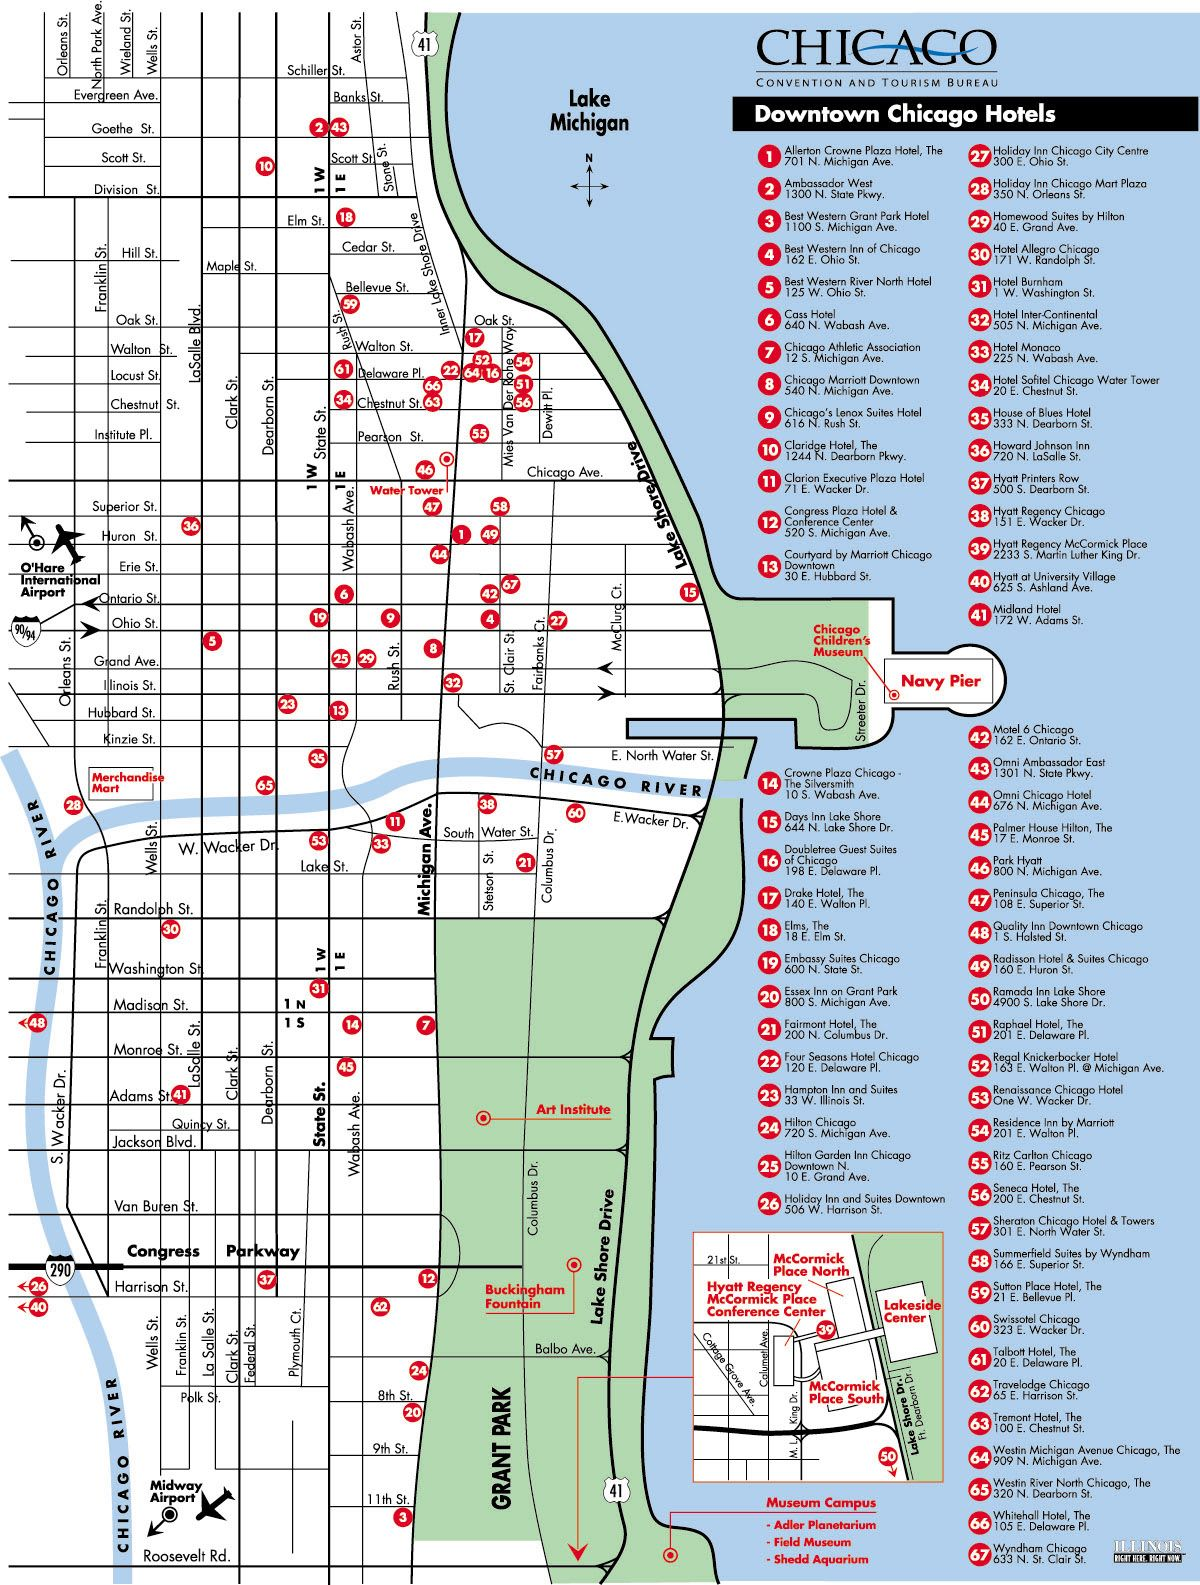 map of downtown chicago hotels Chicago Maps Fun Things